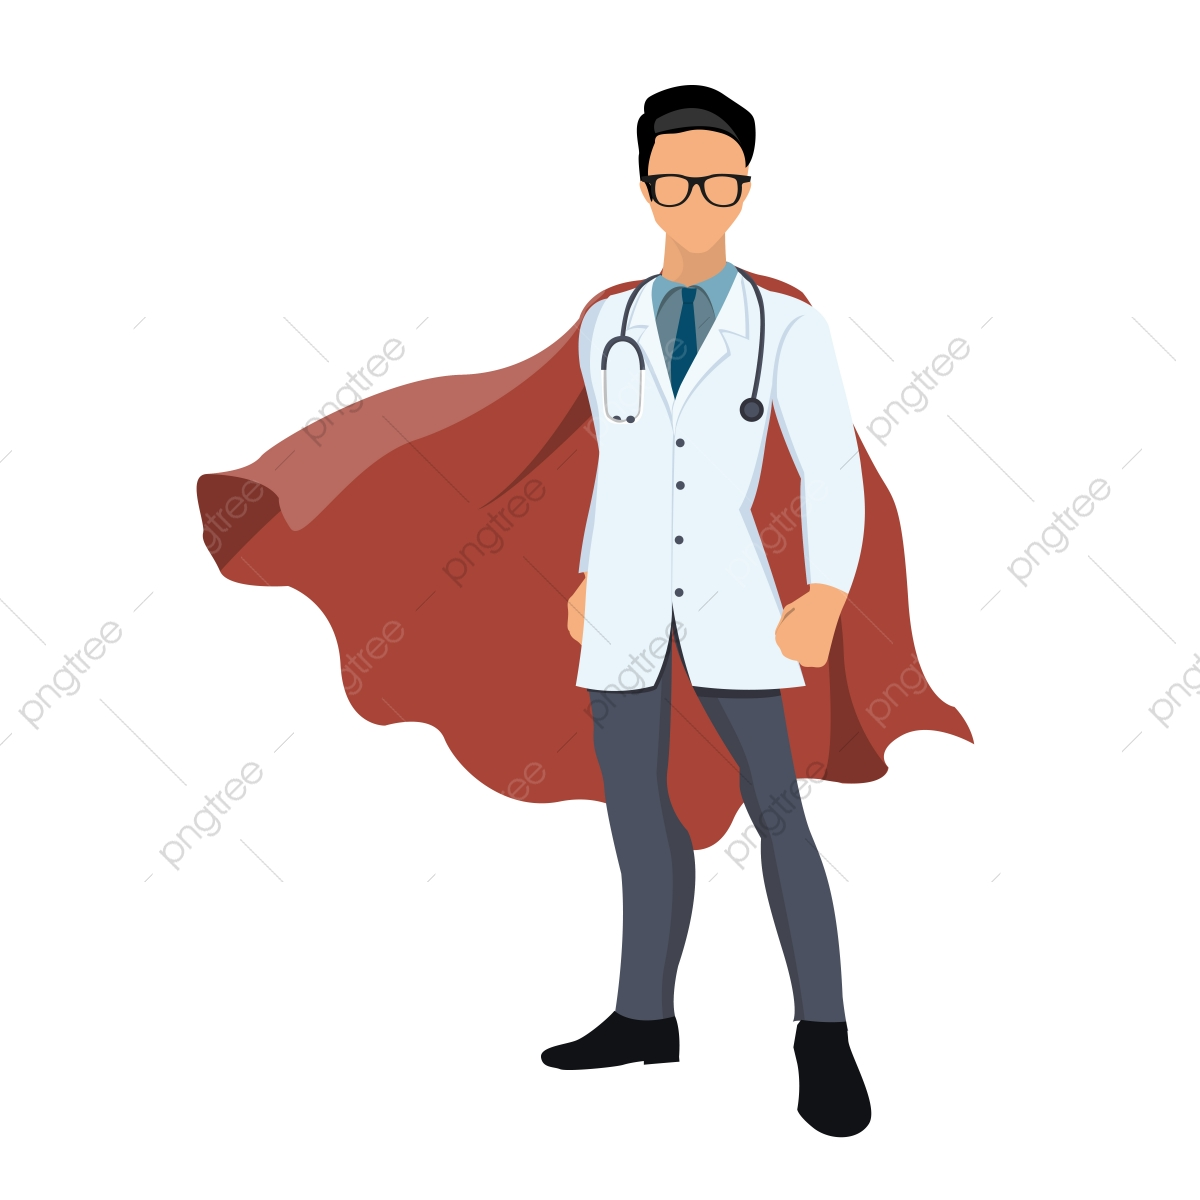 svg royalty free Cartoon Super Hero Doctor With Red Cape